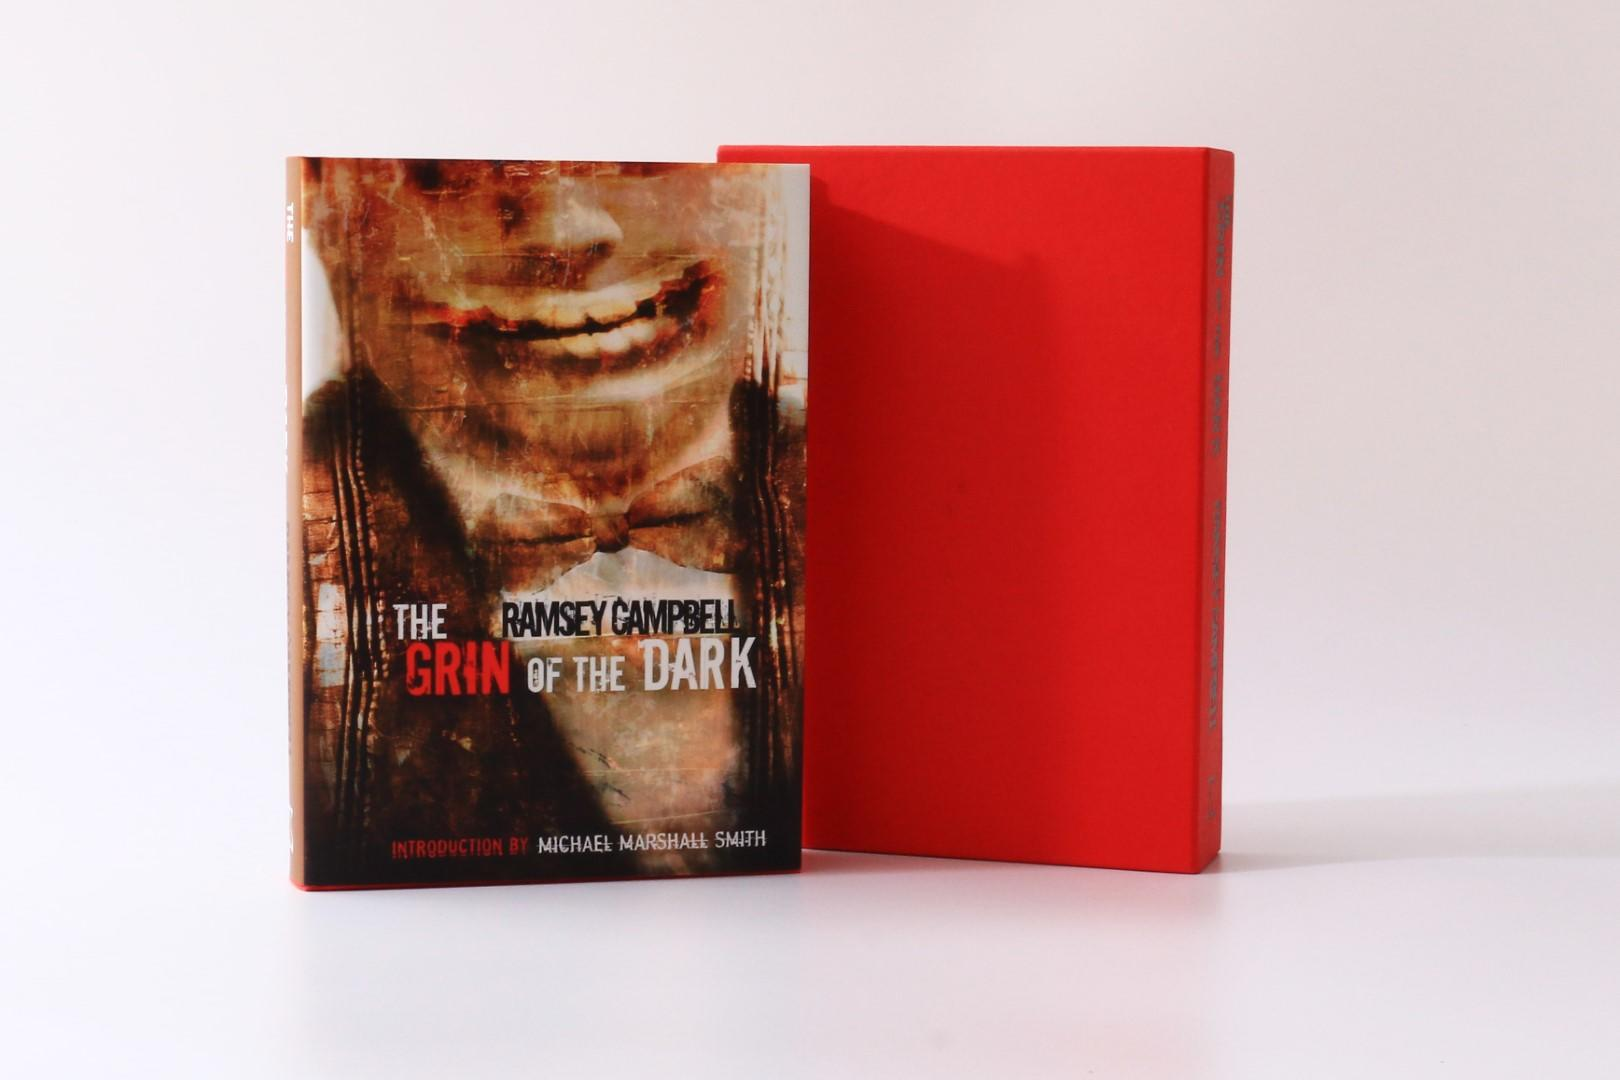 Ramsey Campbell - The Grin of the Dark - PS Publishing, 2007, Signed Limited Edition.